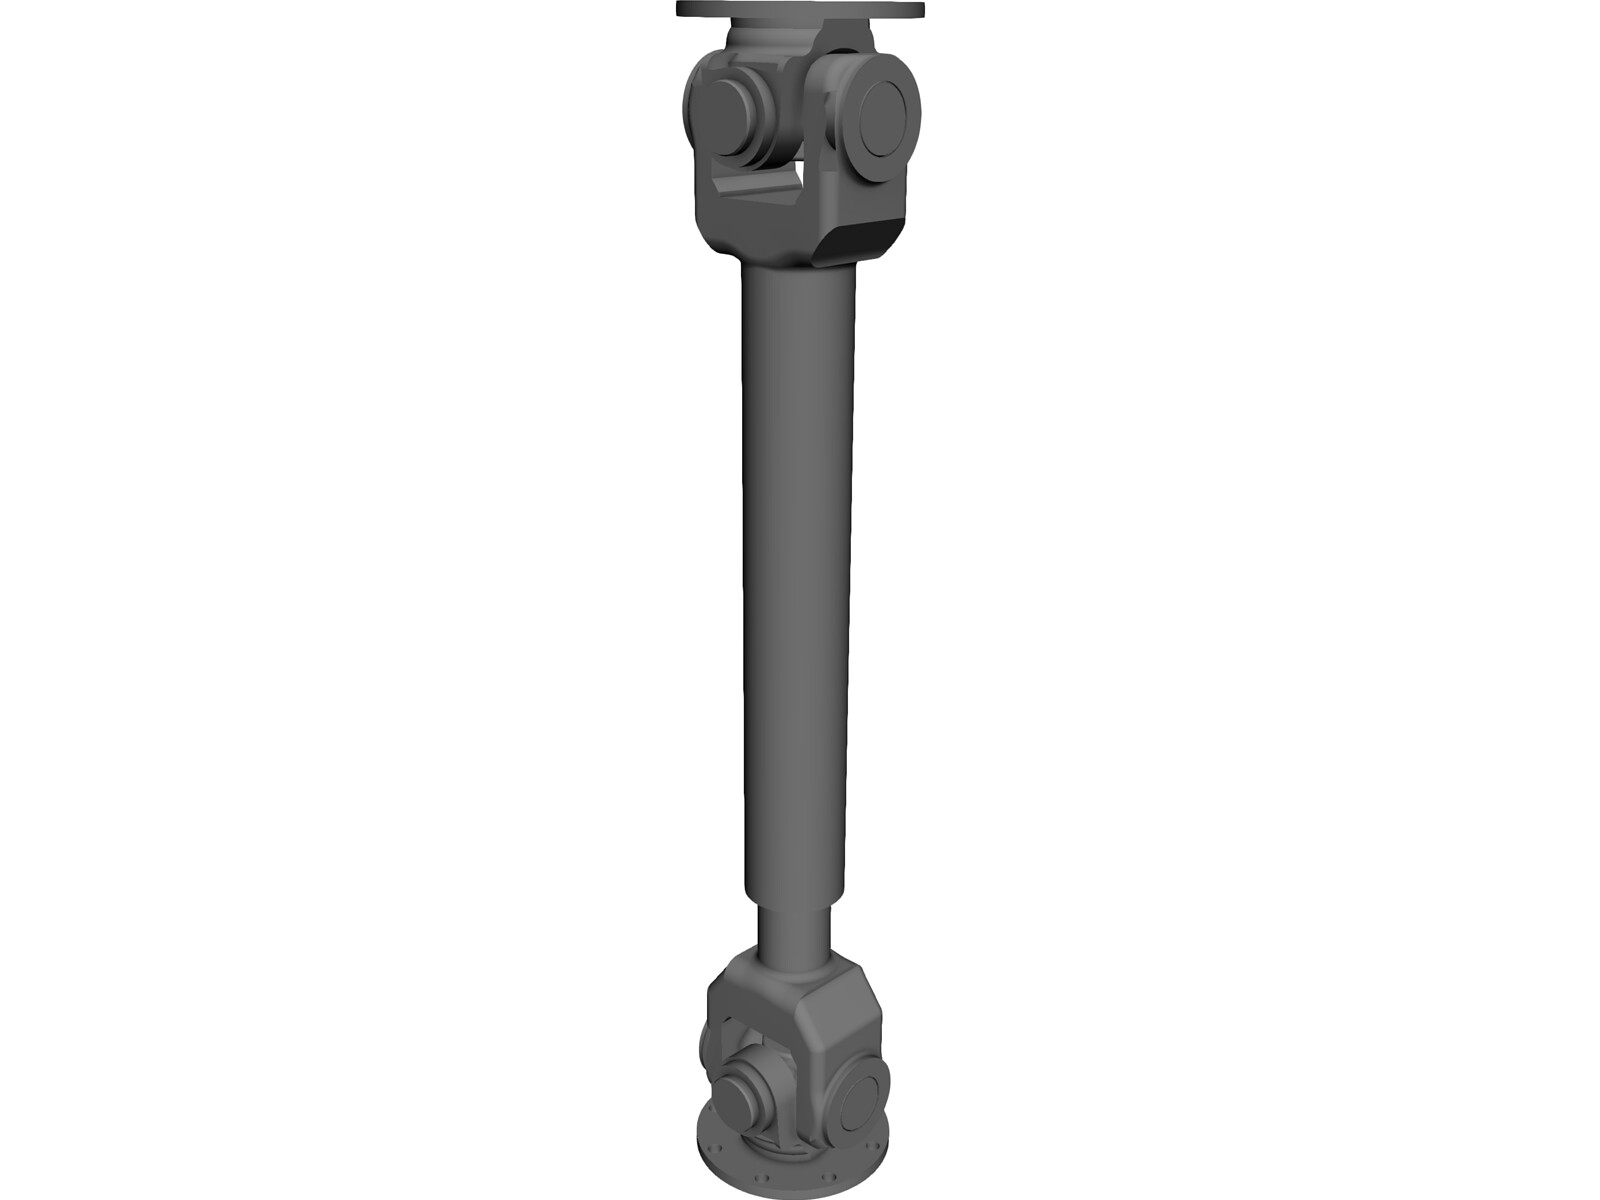 Cardan Shaft 3D CAD Model